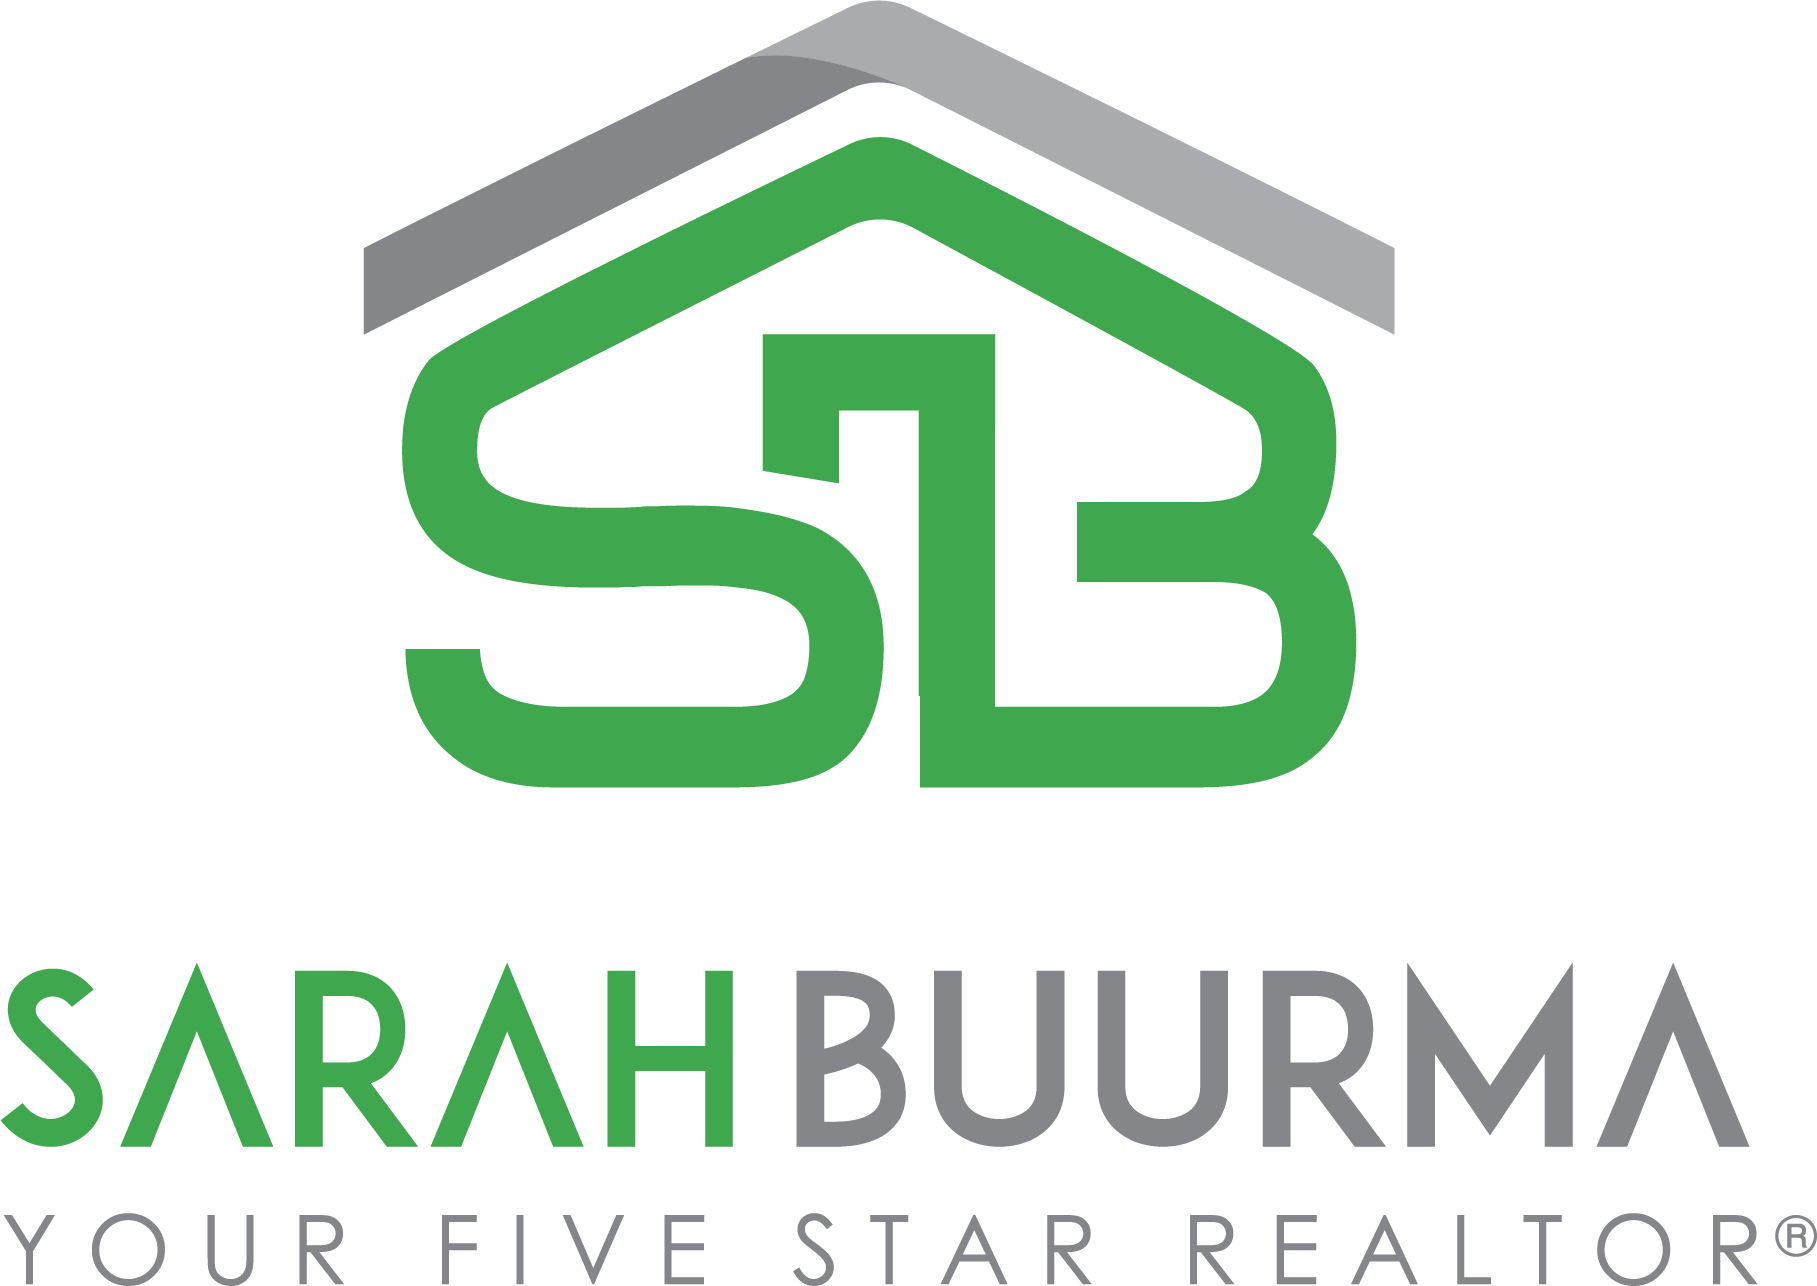 Sarah Buurma - Your Five Star Realtor